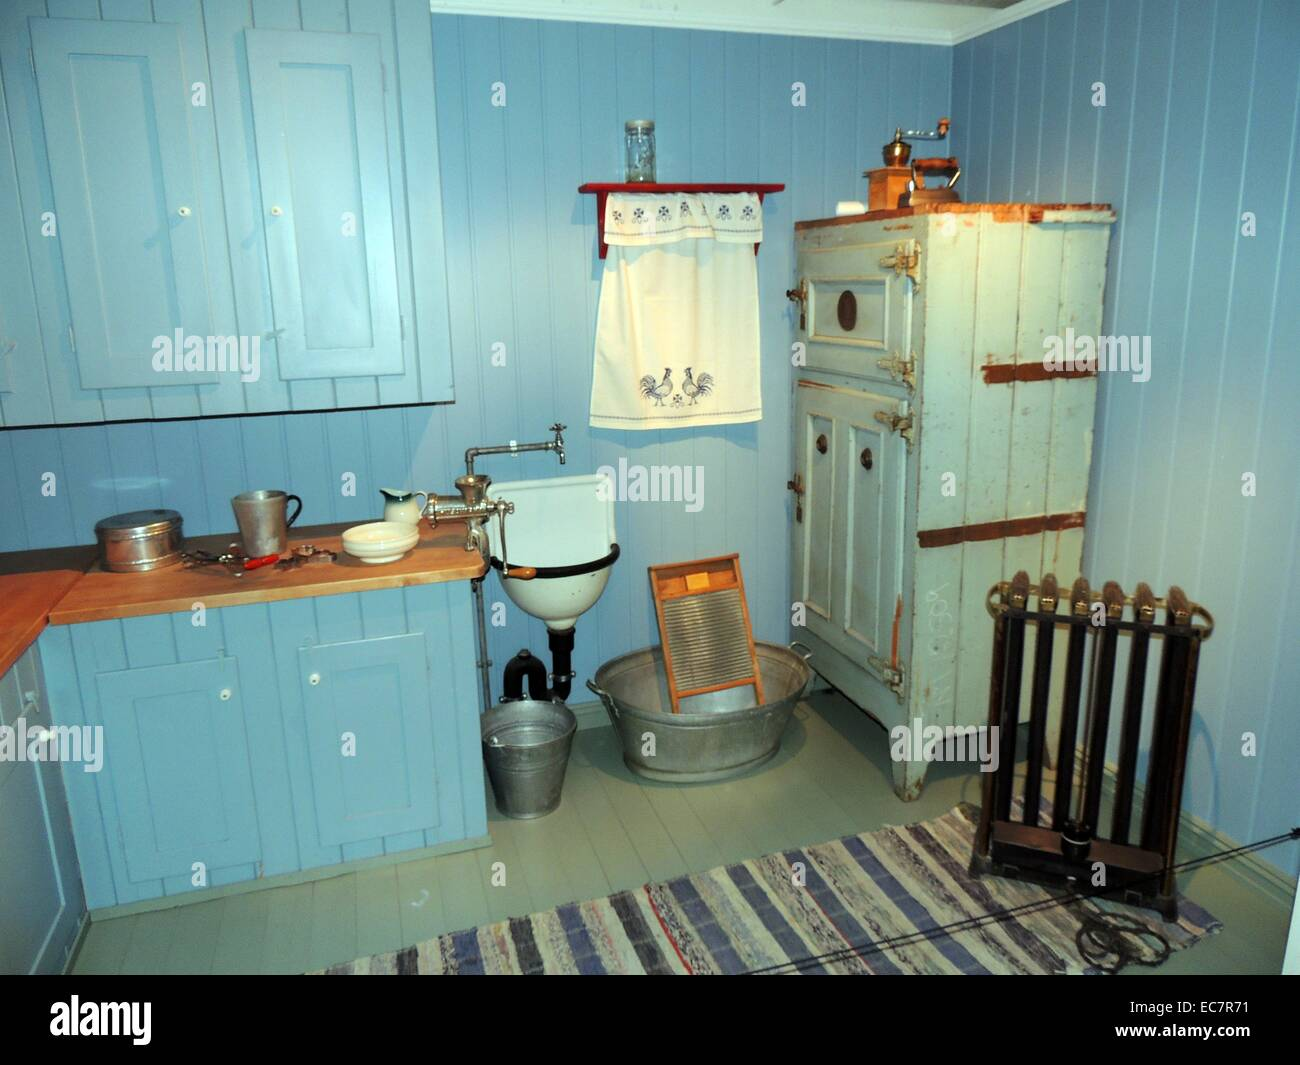 Kitchen War Stock Photos & Kitchen War Stock Images - Page 2 - Alamy